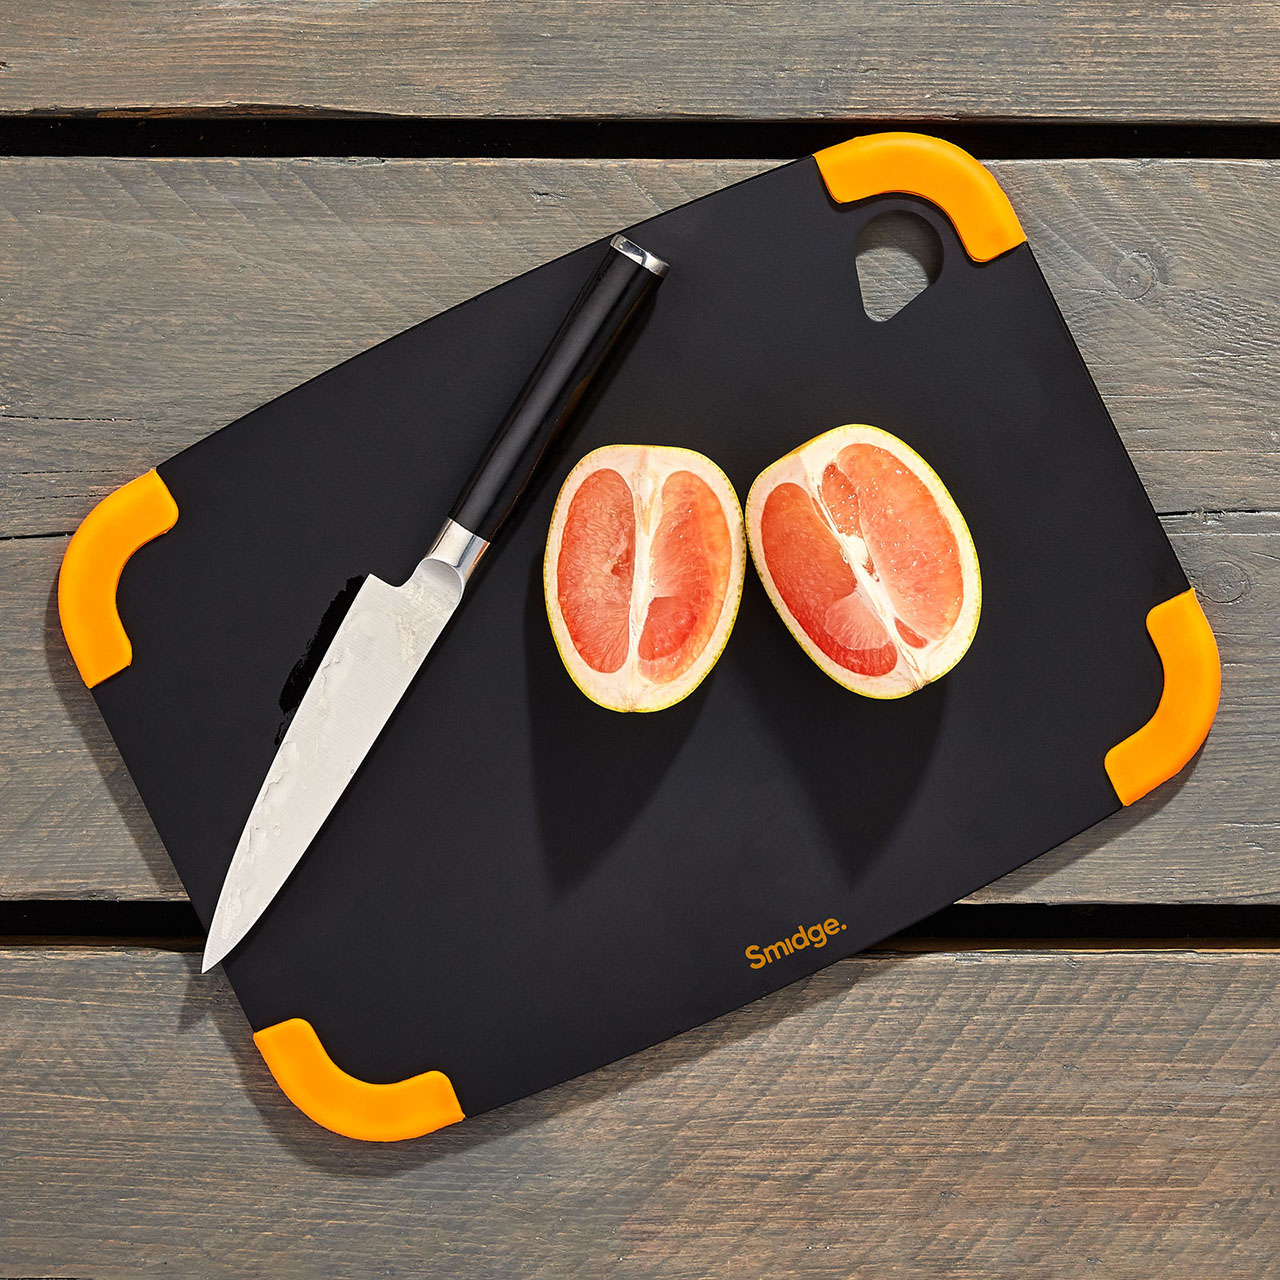 Substainably sourced chopping board from Smidge